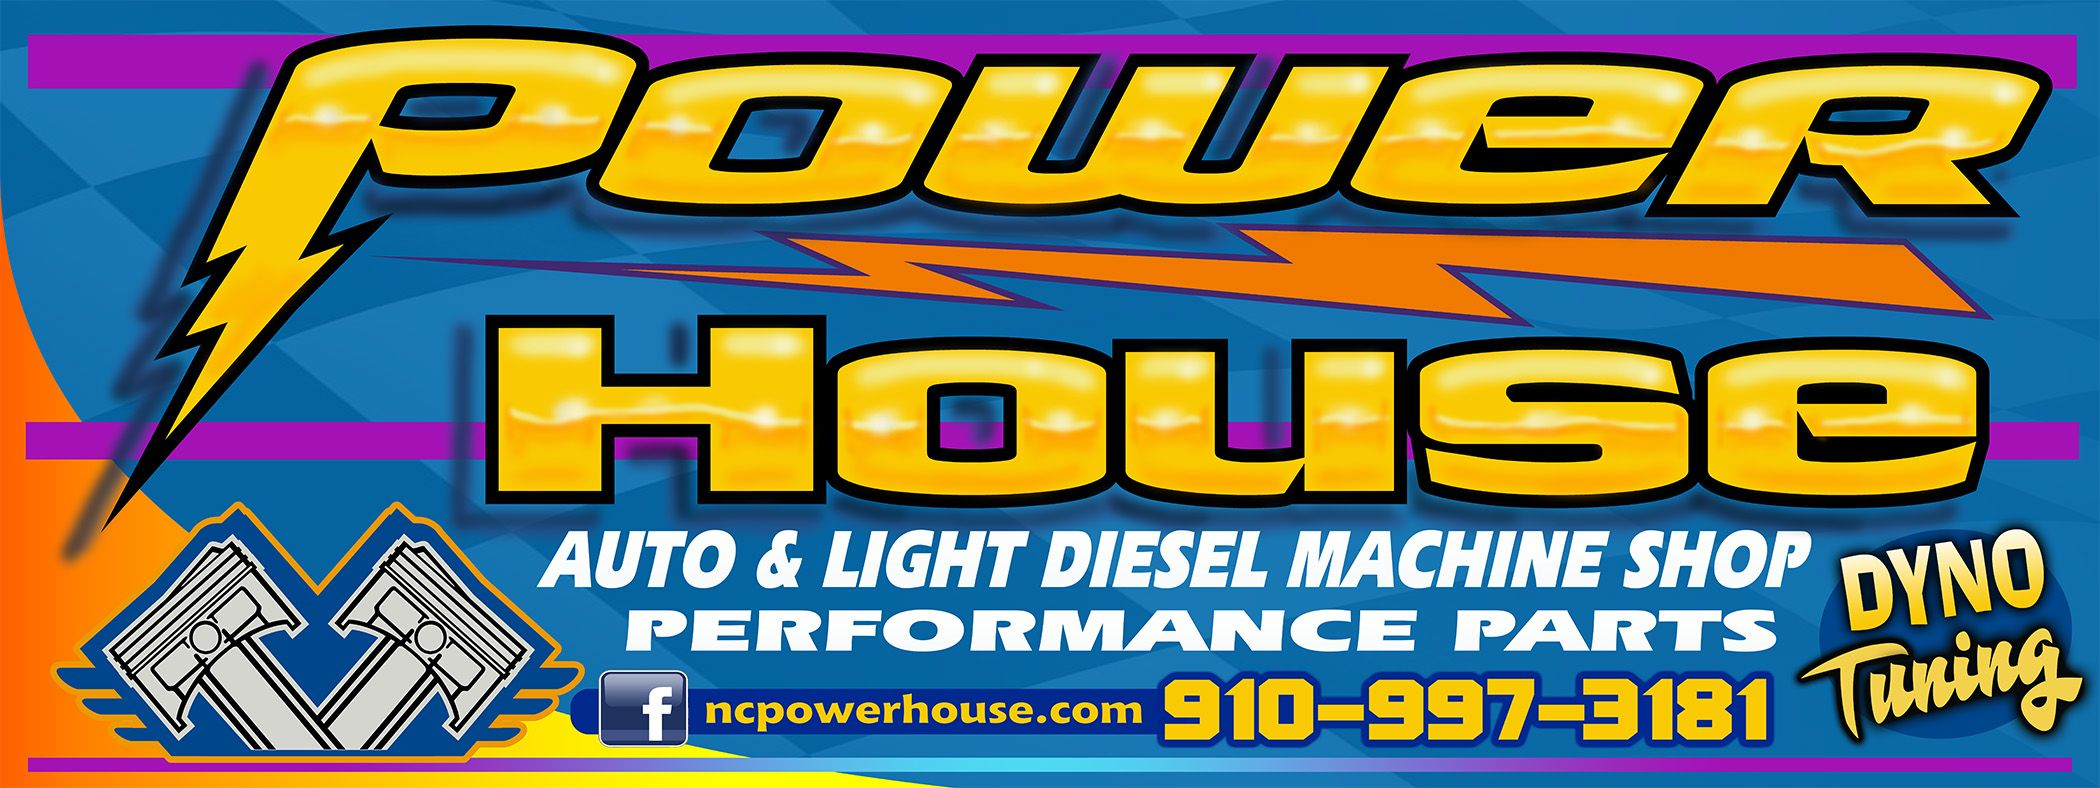 The Power House Auto Machine and Dyno